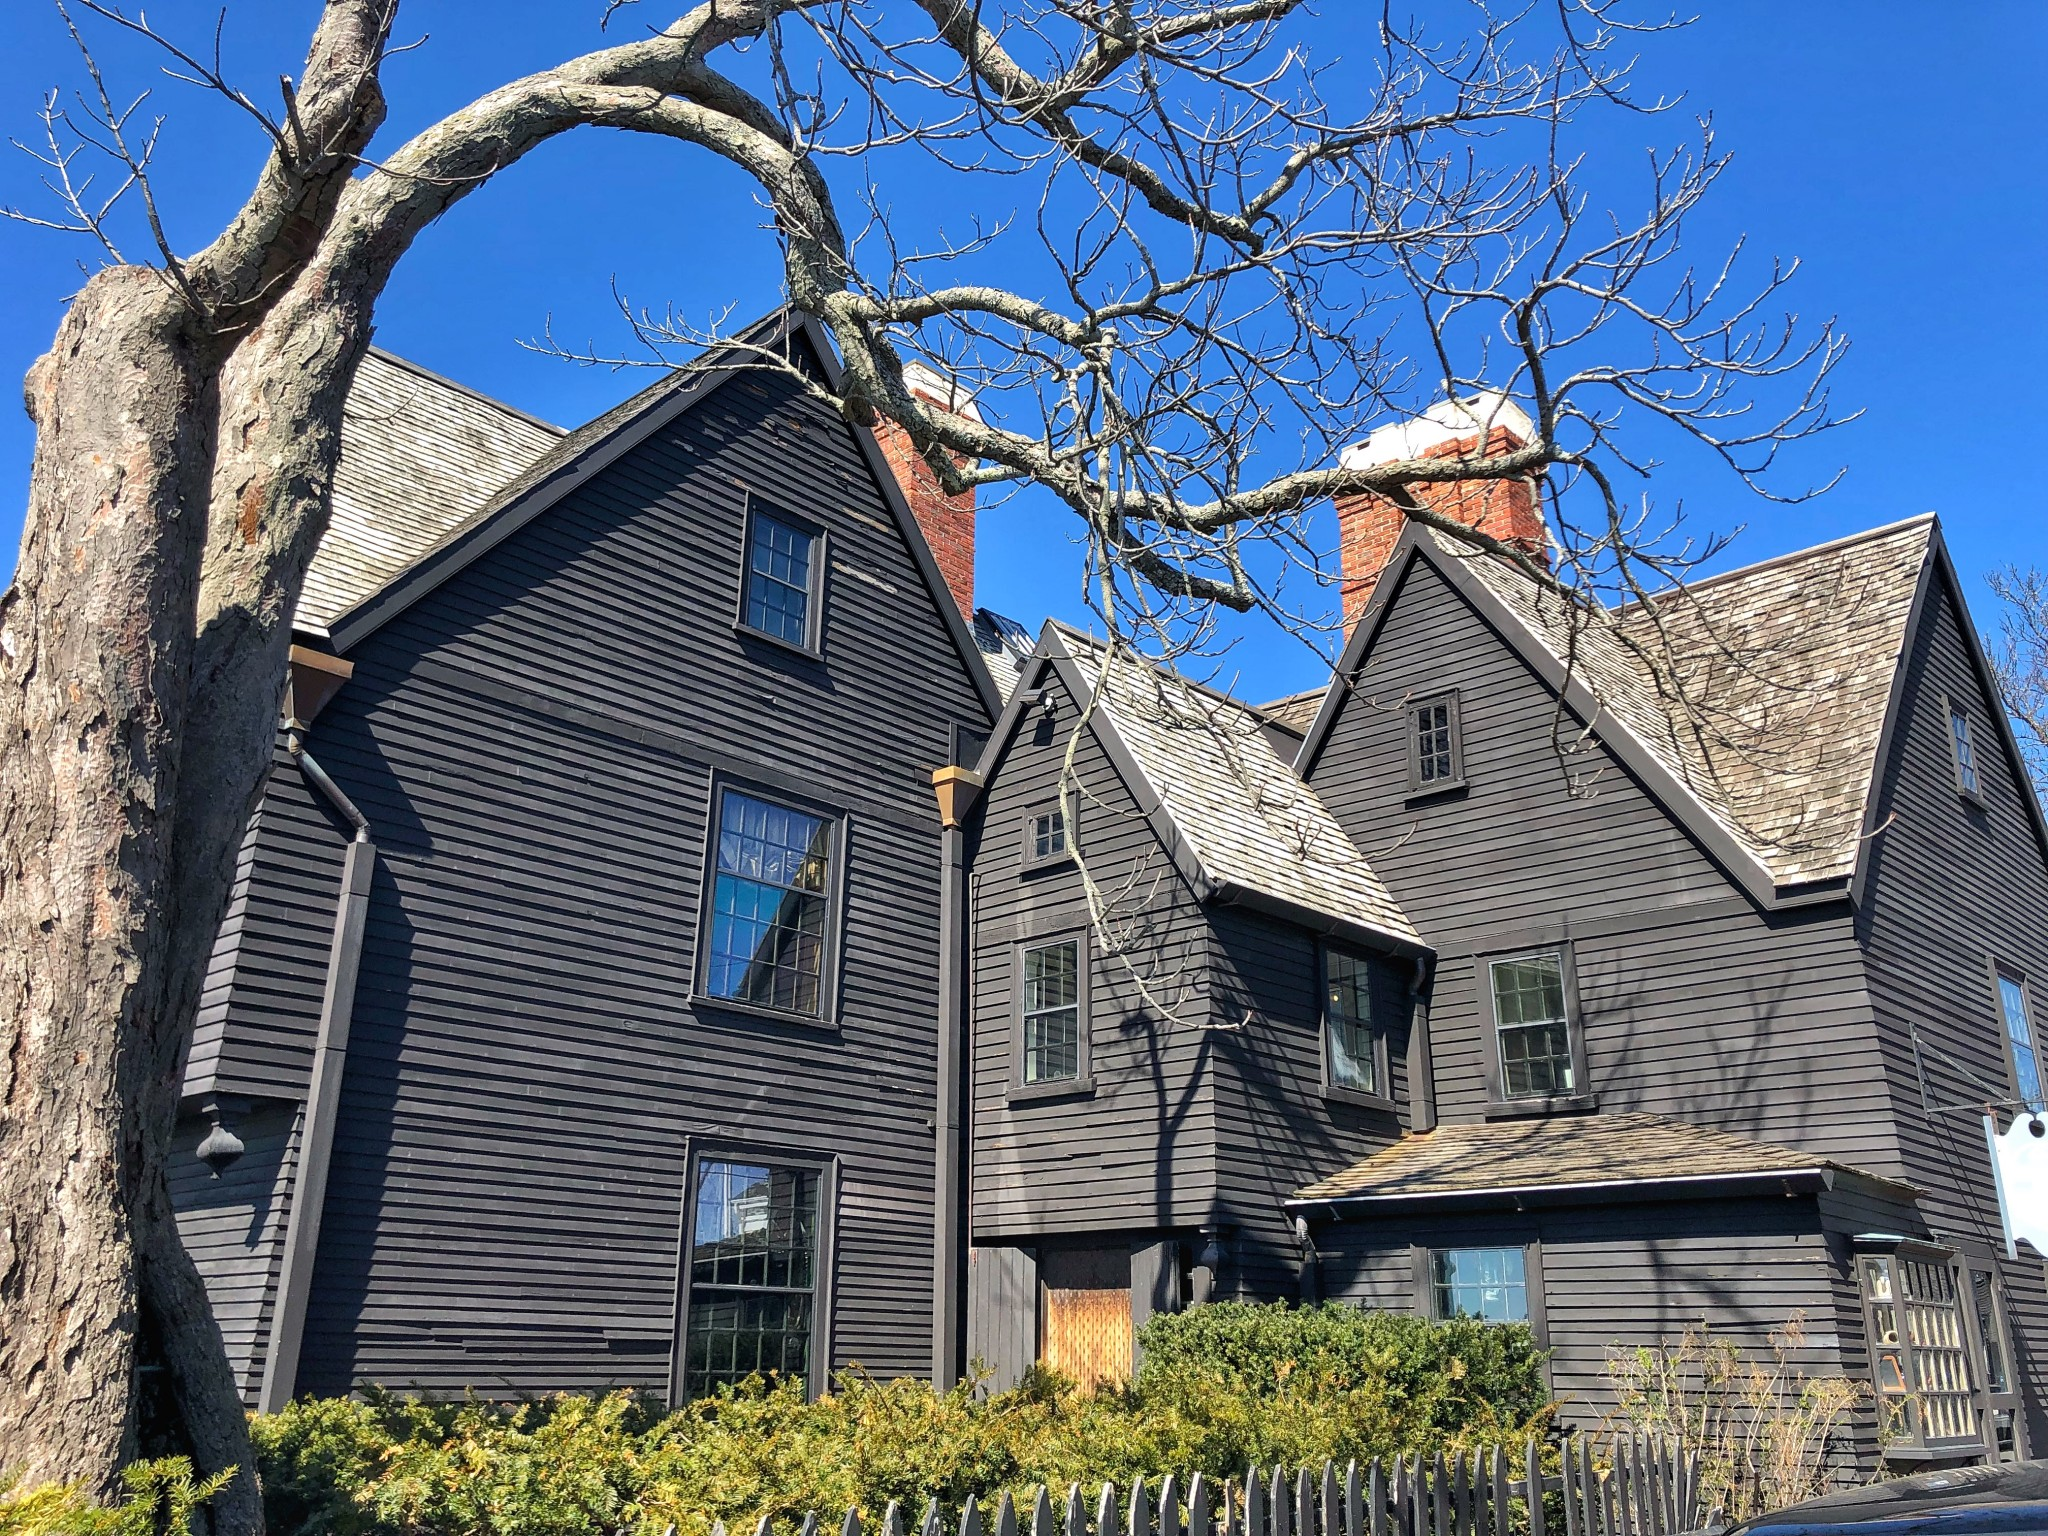 house of seven gables, salem, massachusetts, the-alyst.com